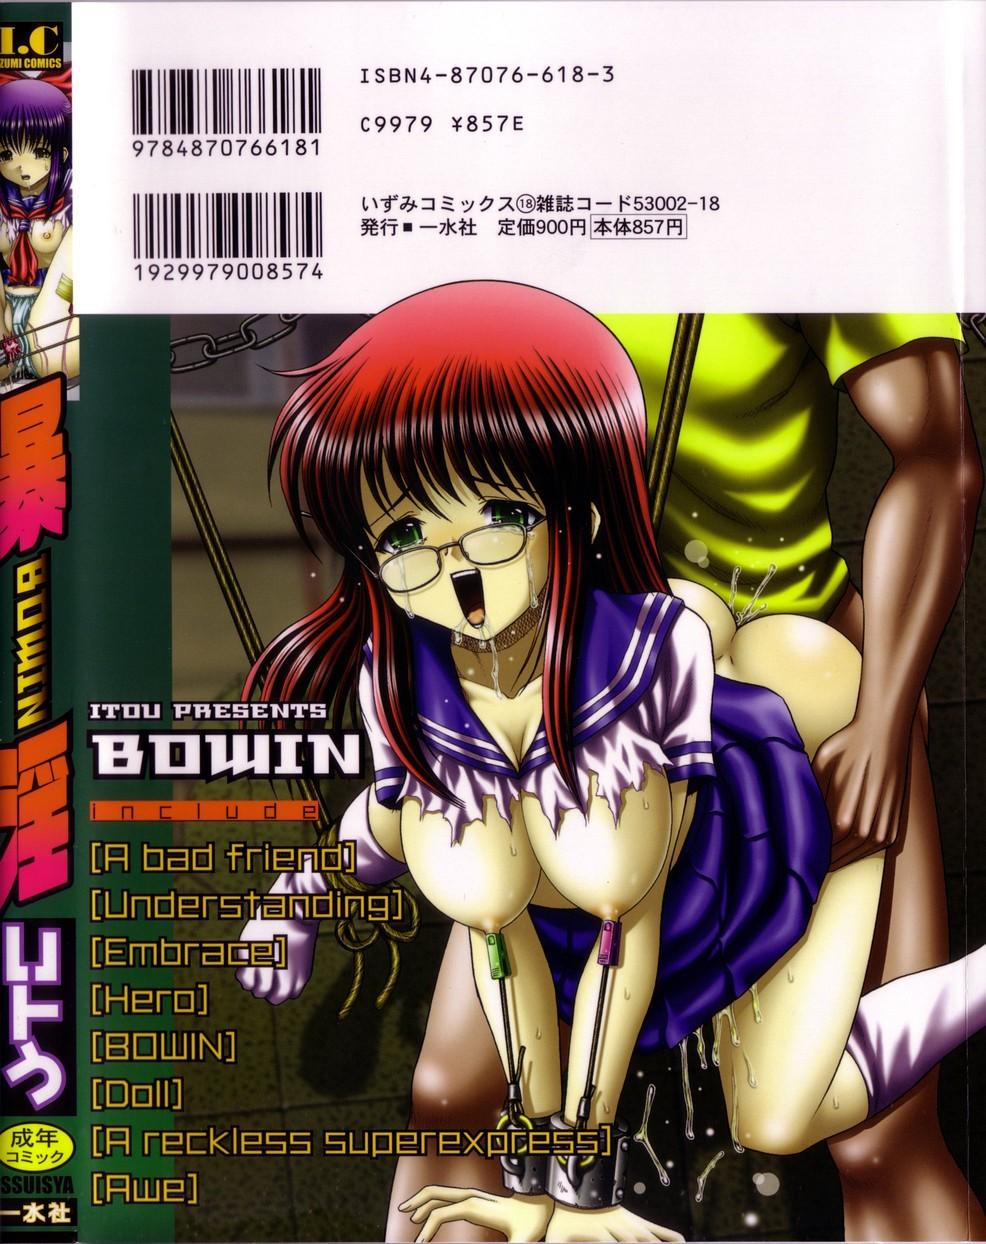 Bowin Ch. 1-2 2